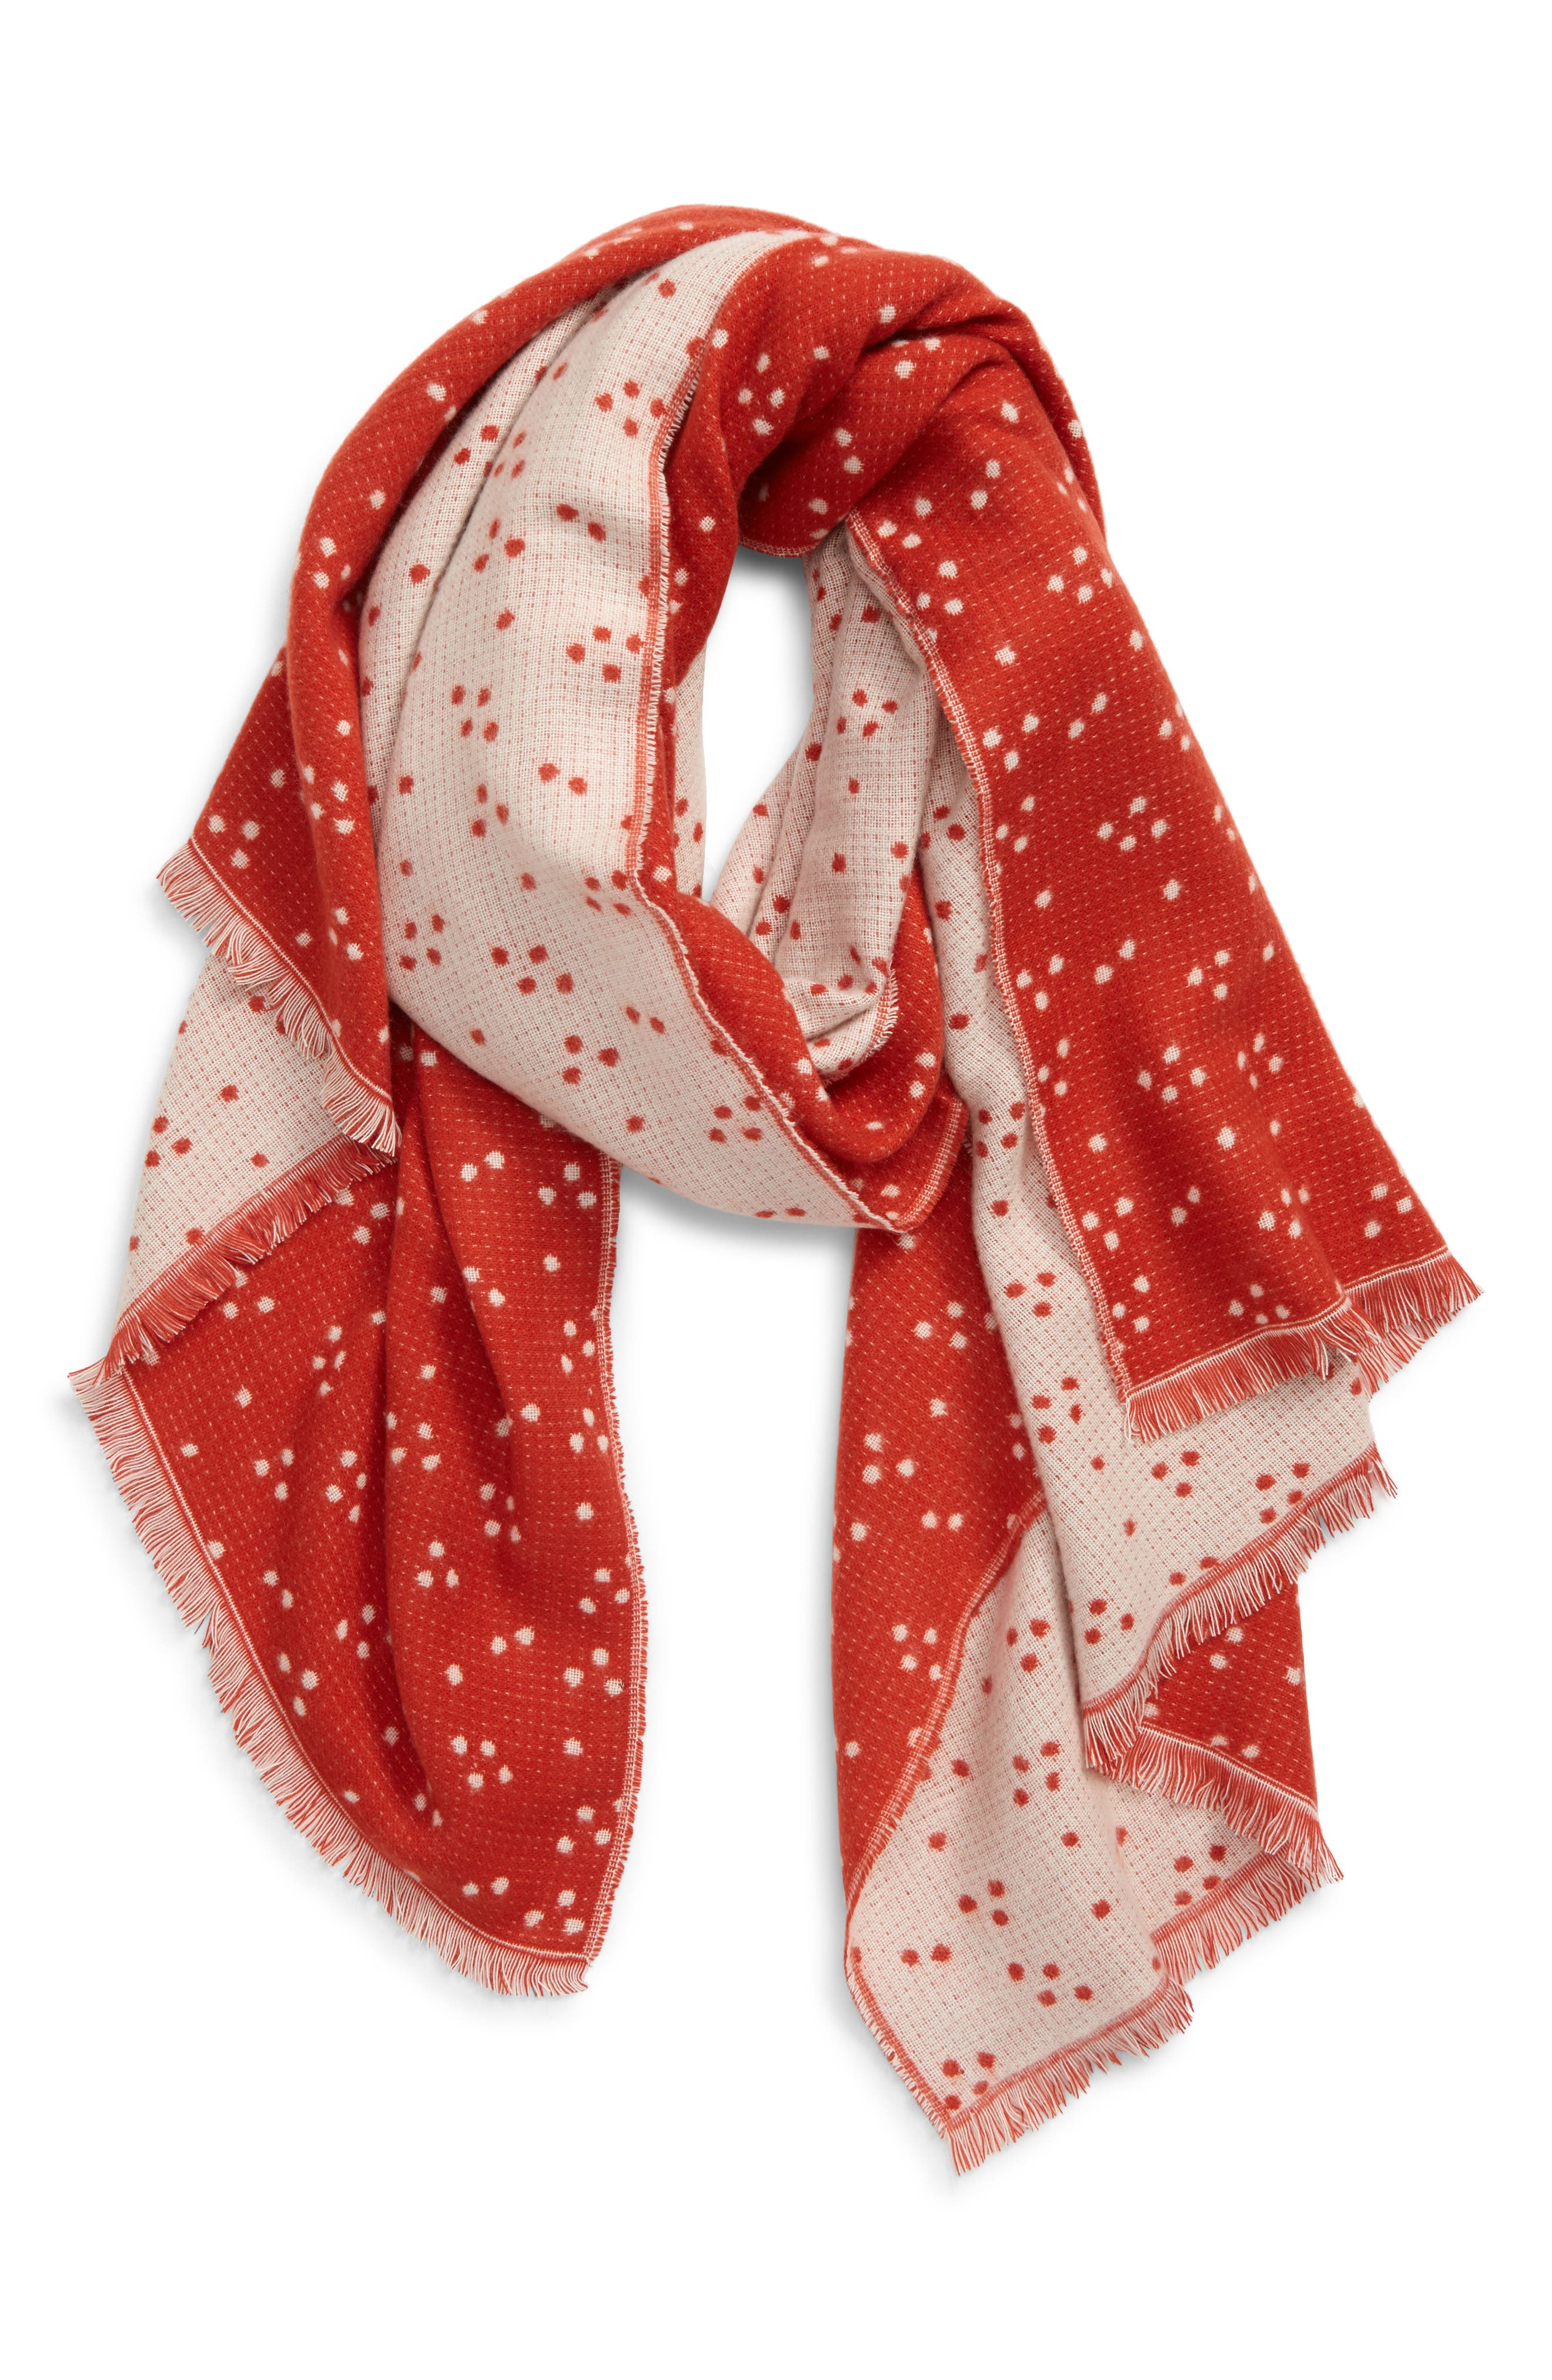 This supersoft jacquard scarf features woven-right-in polka dots-a dream during AC season. Style Name: Madewell Jacquard Dot Scarf. Style Number: 6064573. Available in stores.